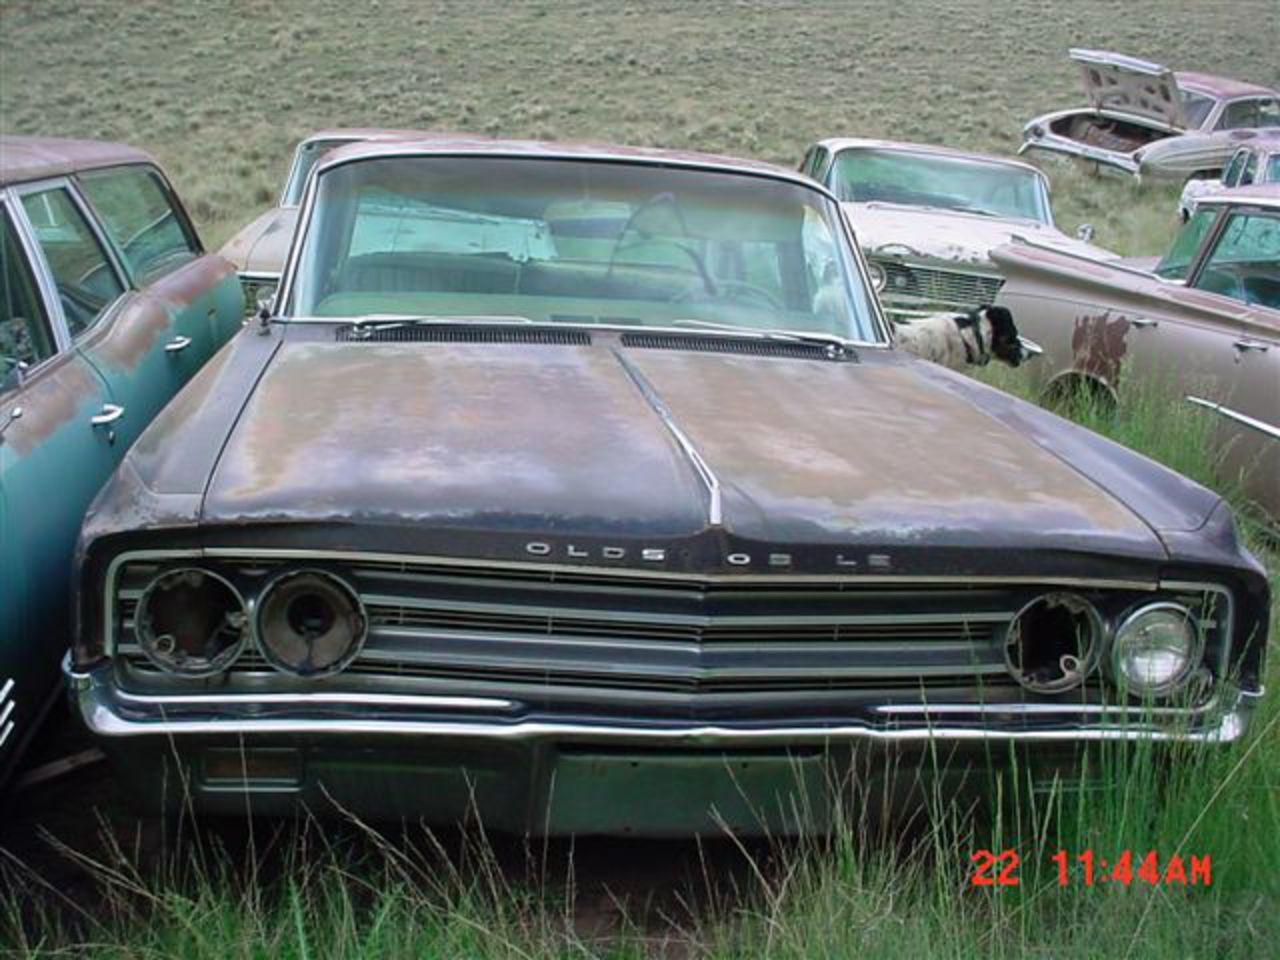 34 1965 or 1966 Oldsmobile 98 4dr HT.JPG. 1965 or 1966 Oldsmobile 98 4 door